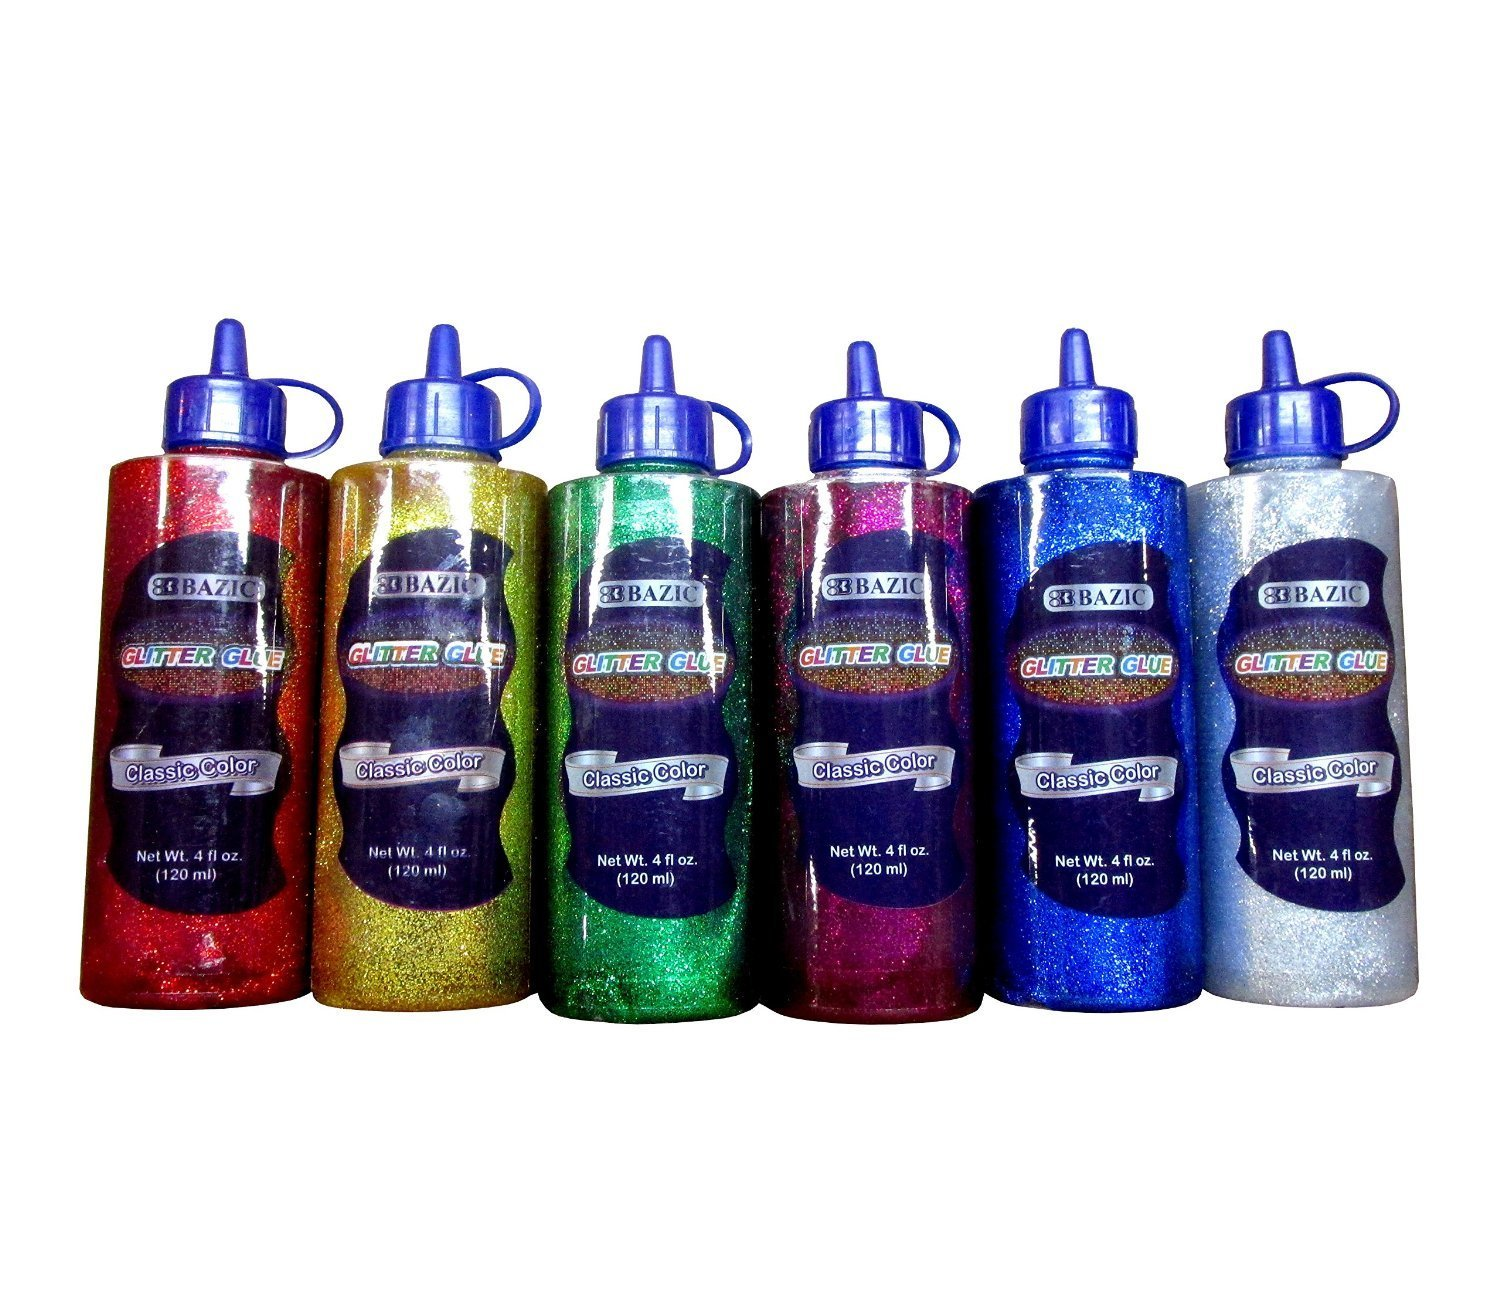 6Pk, Classic Color Glitter Glue 4 Oz. (120 mL) Green, Gold, Red, Silver, Blue, and Purple